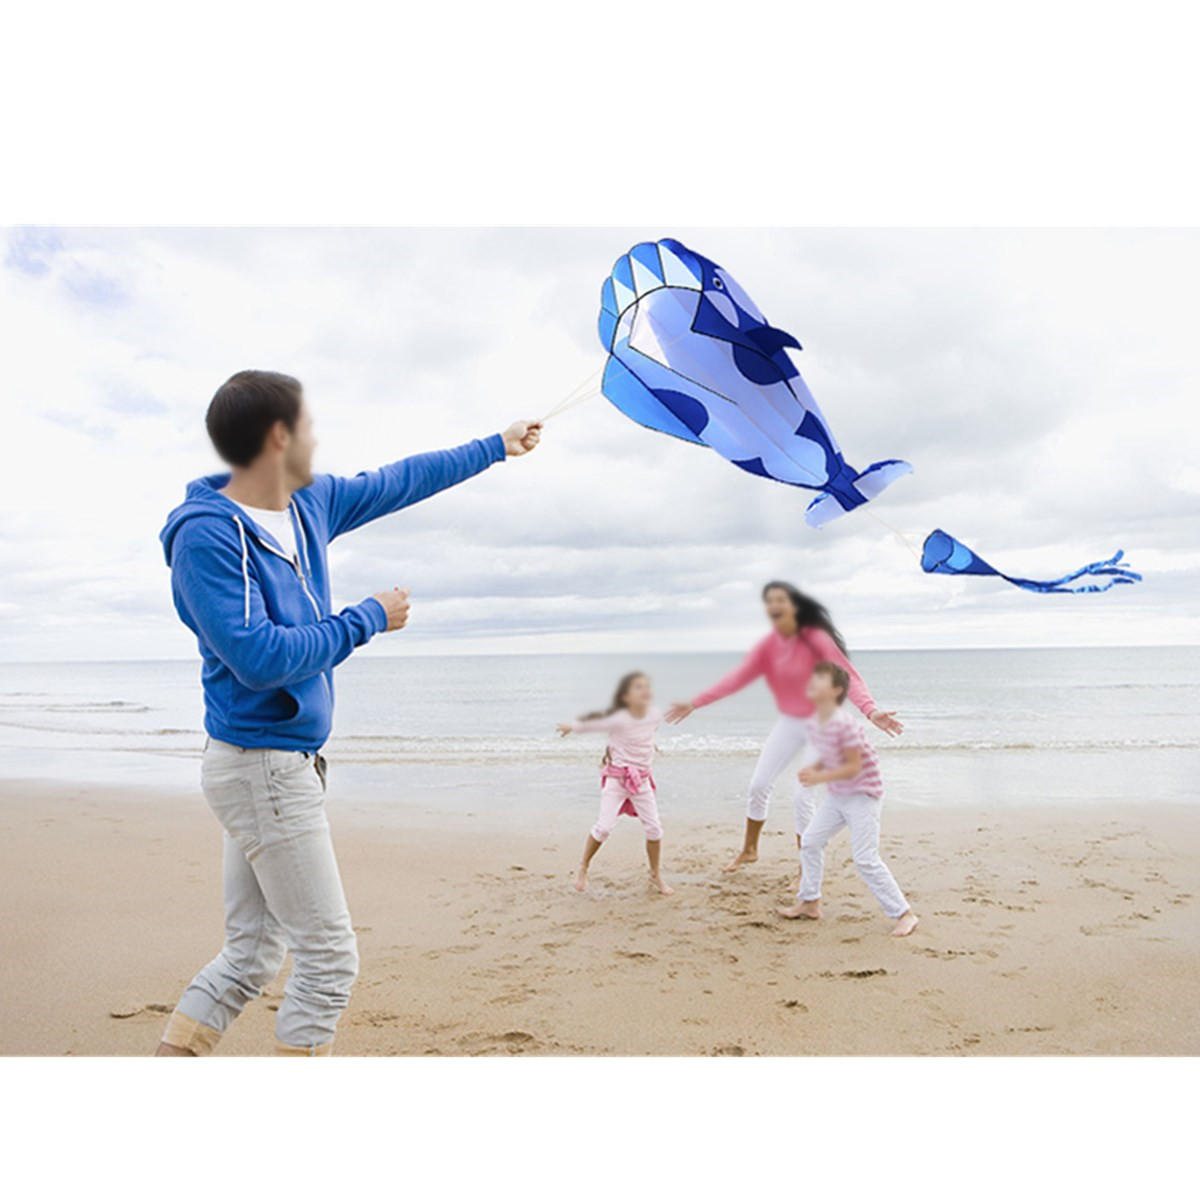 3D Colorful Flower Kite Single Line Outdoor sports Toy Light Wind Flying Kids - 5